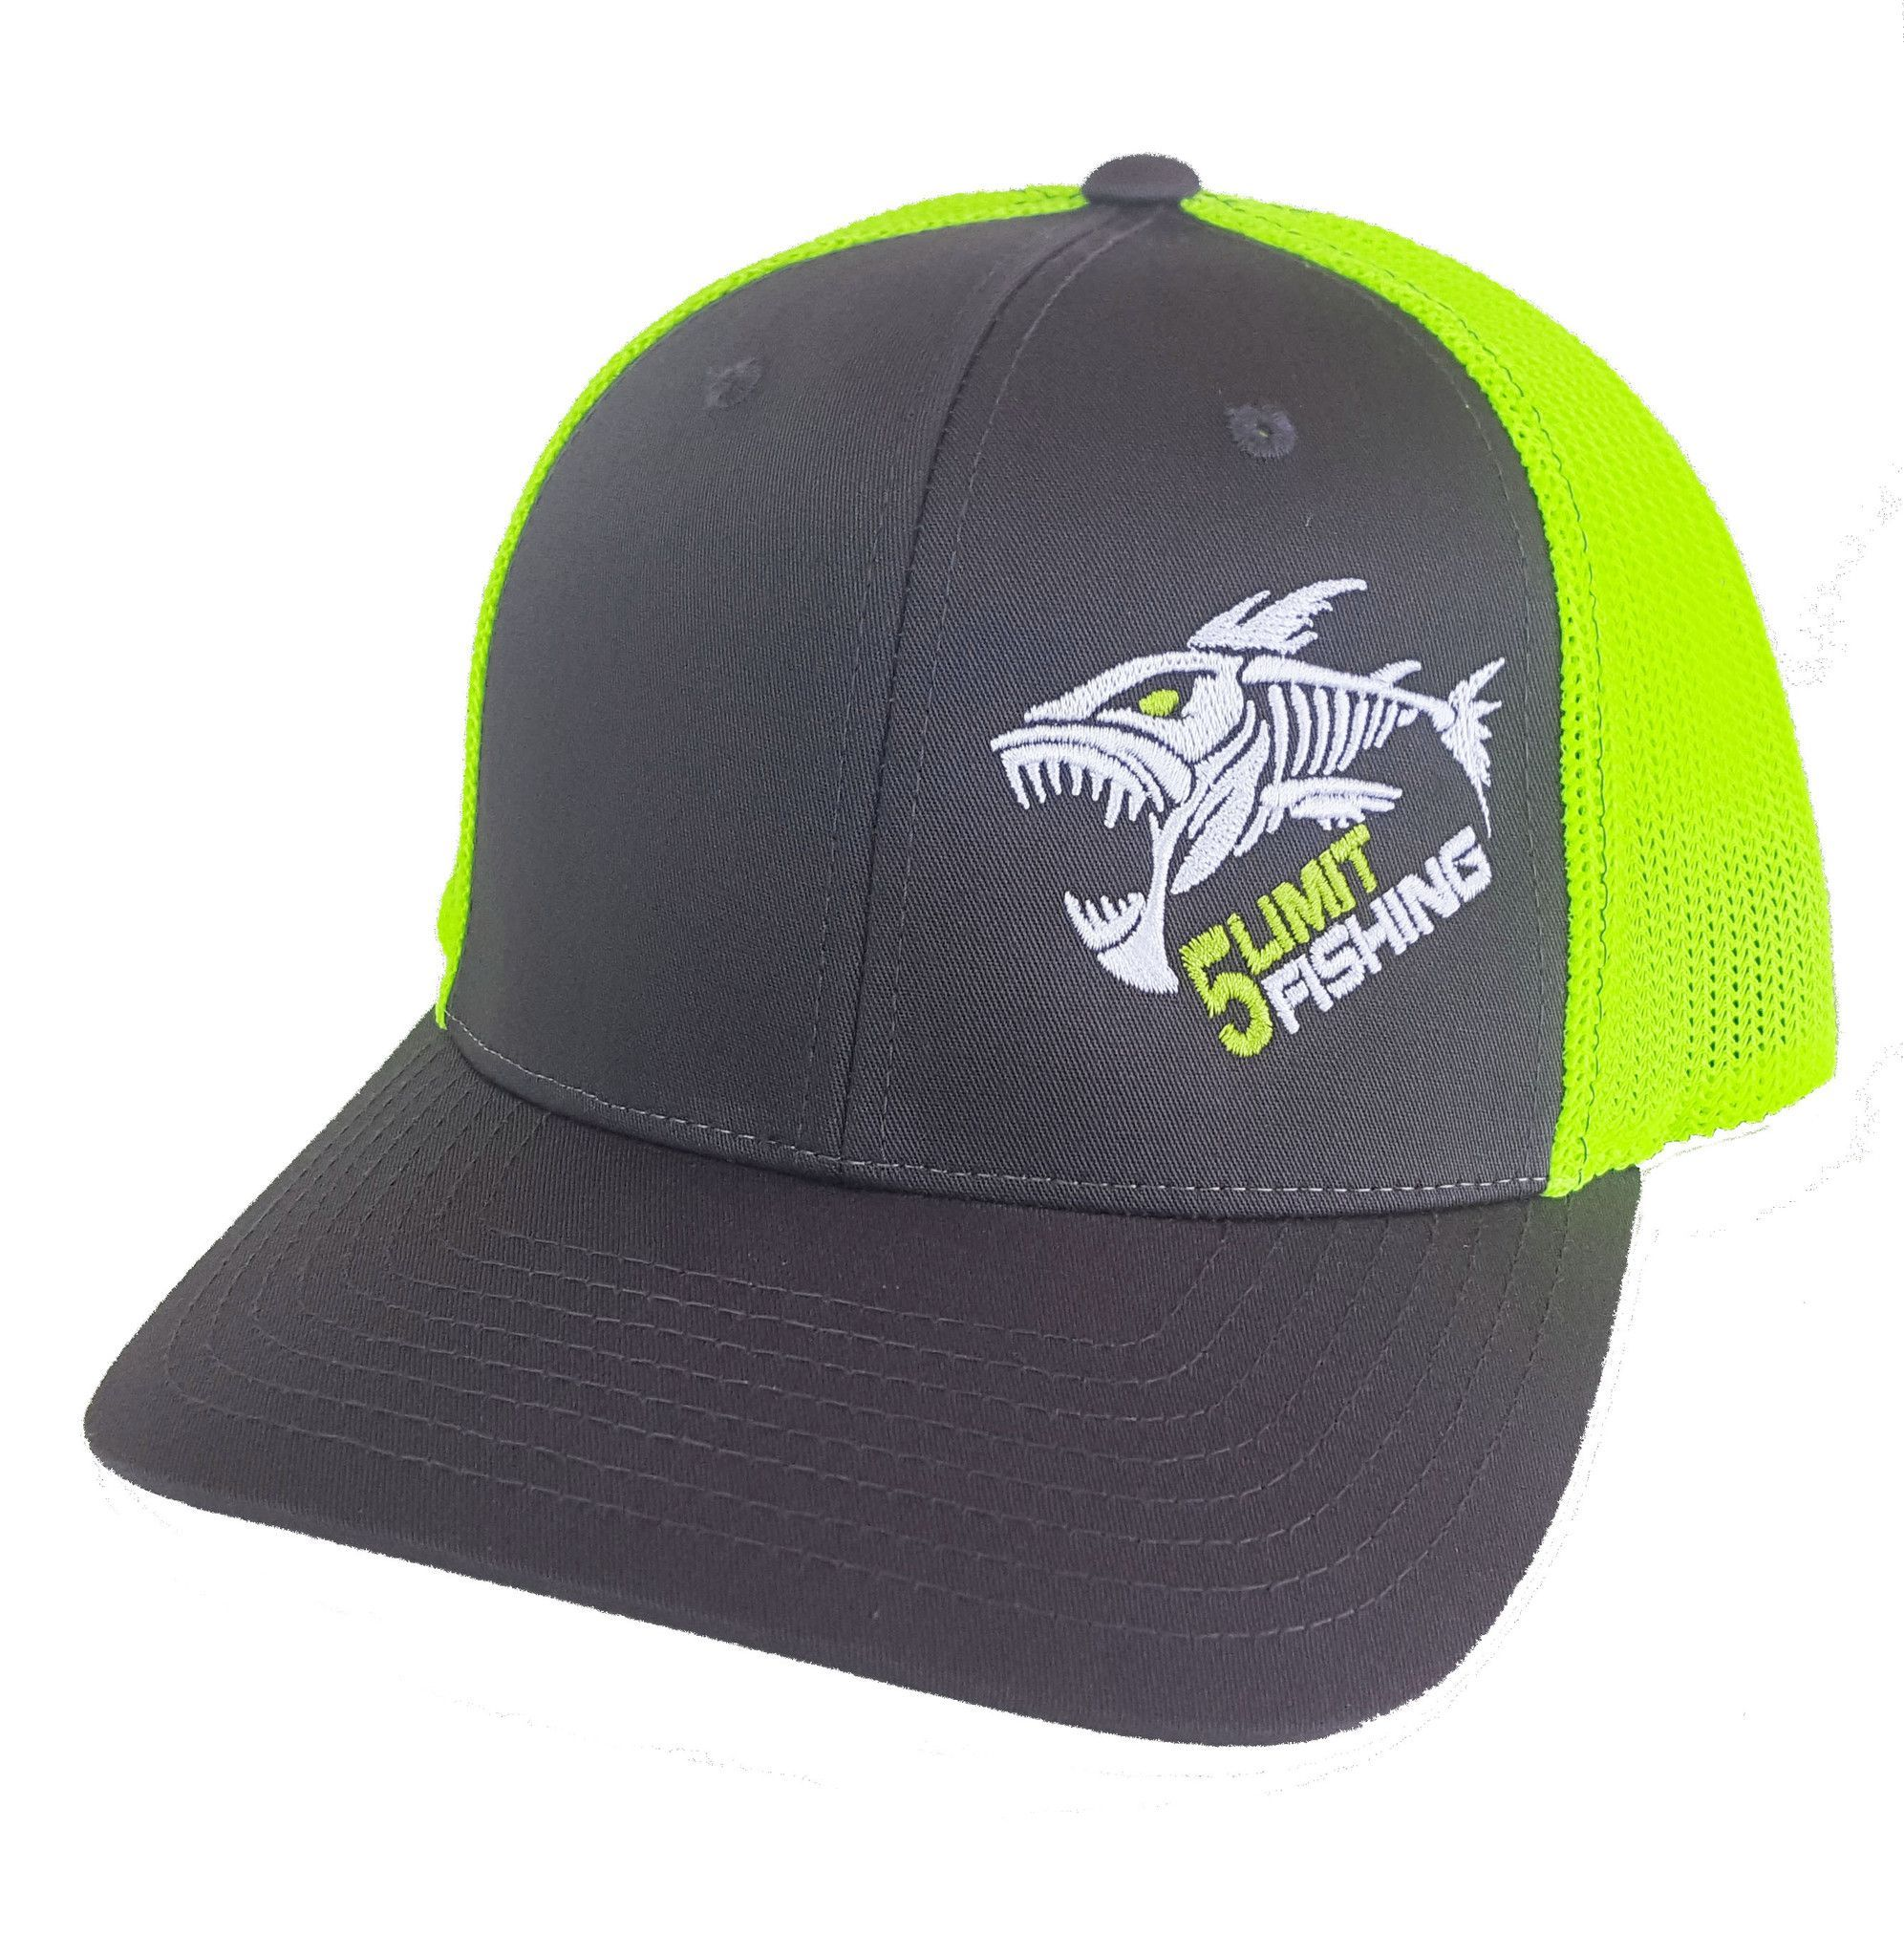 pre order new lower prices the best promo code for neon texas rangers hat kit e1883 c0d3f